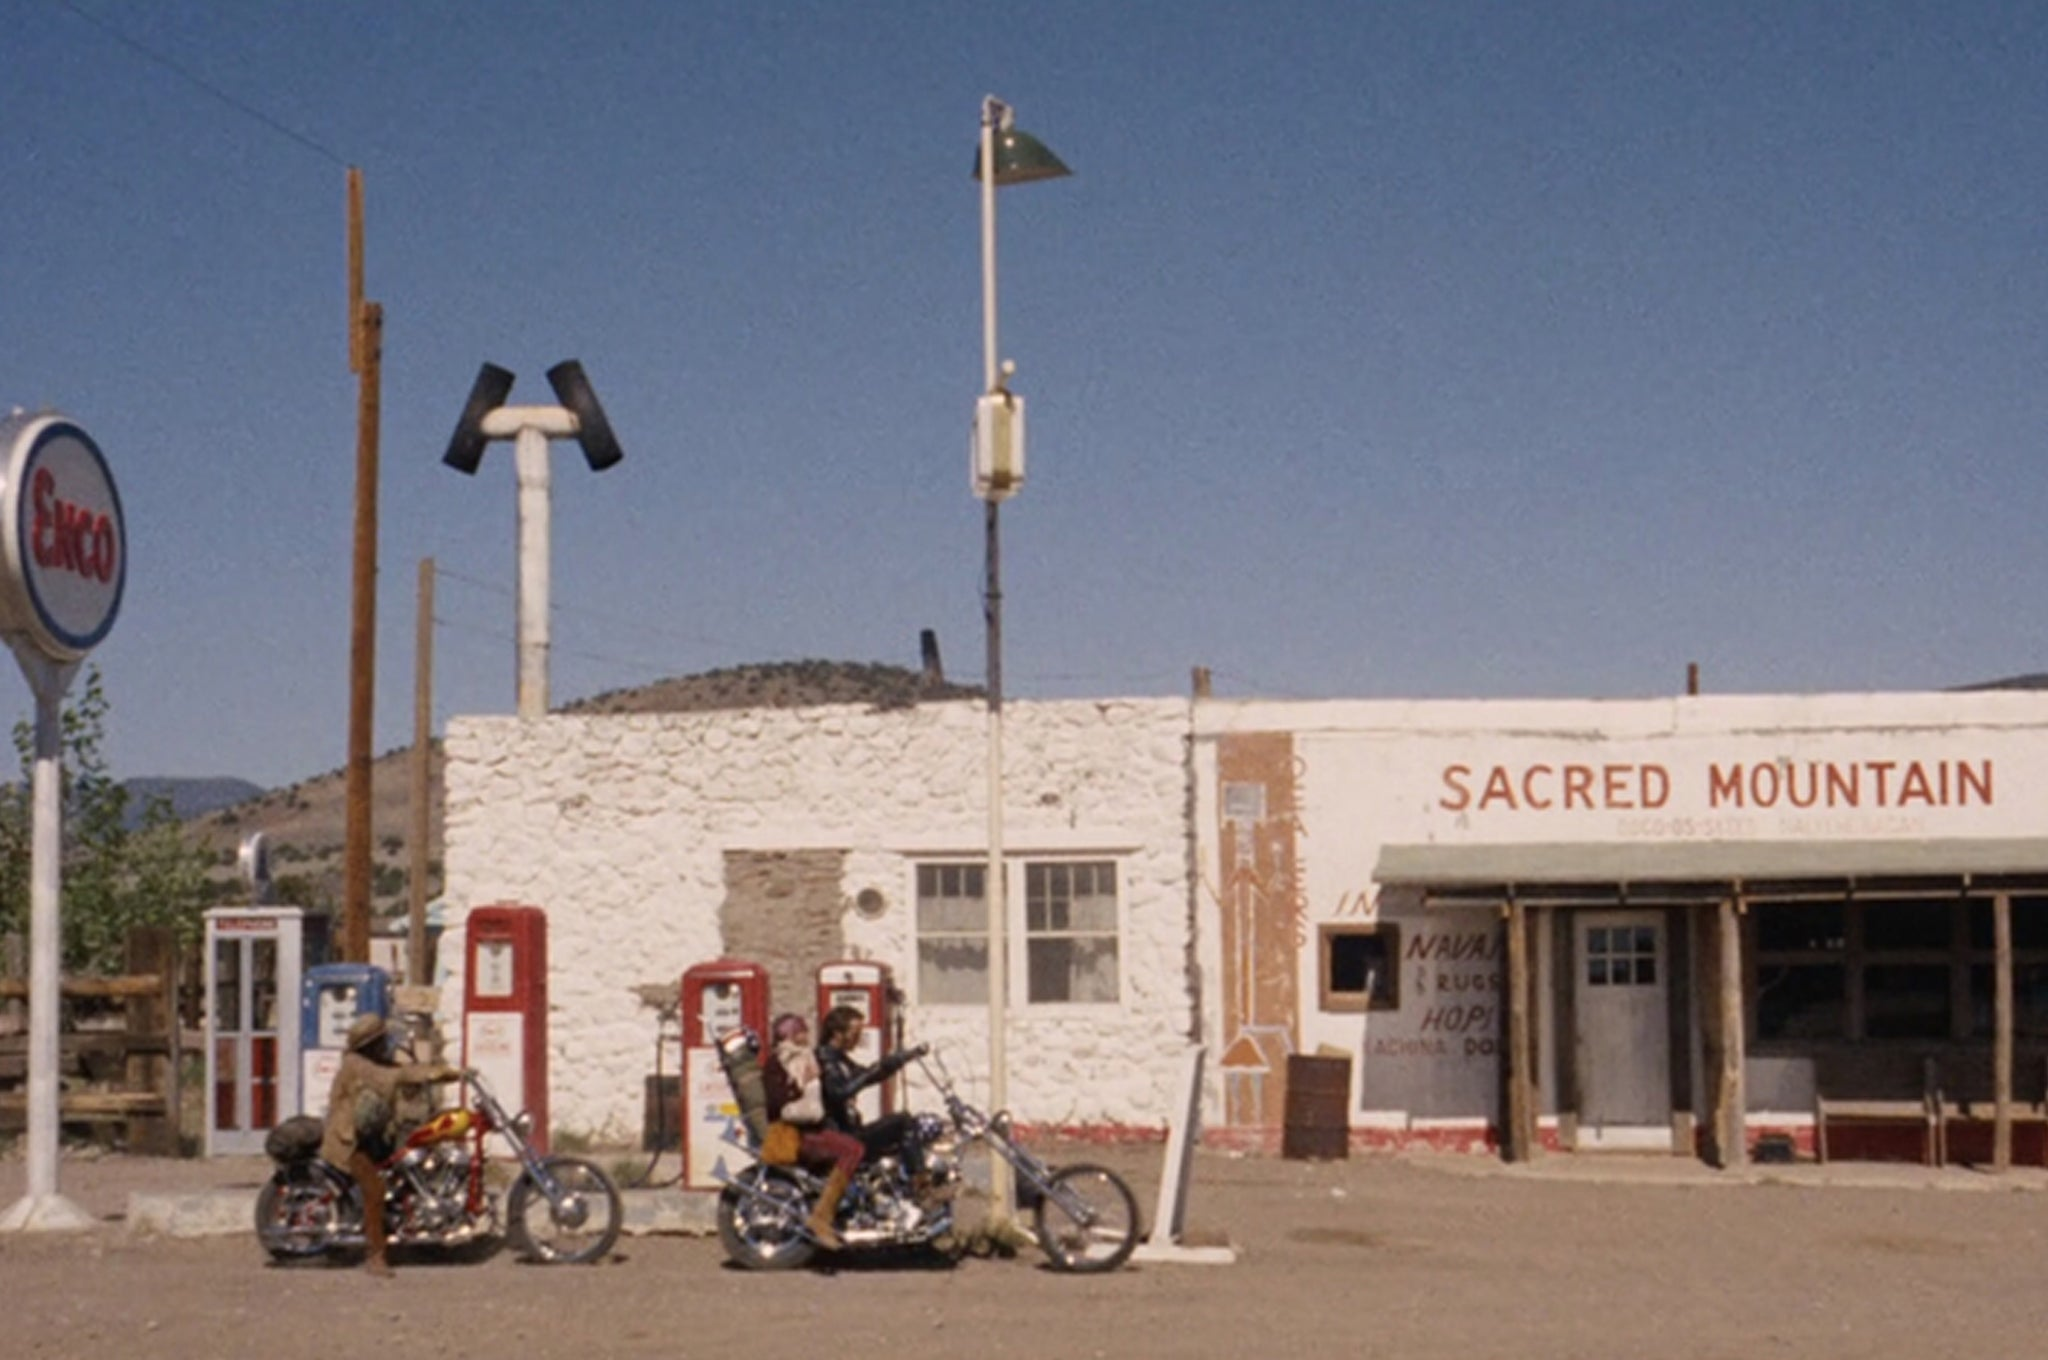 photo from Easy Rider